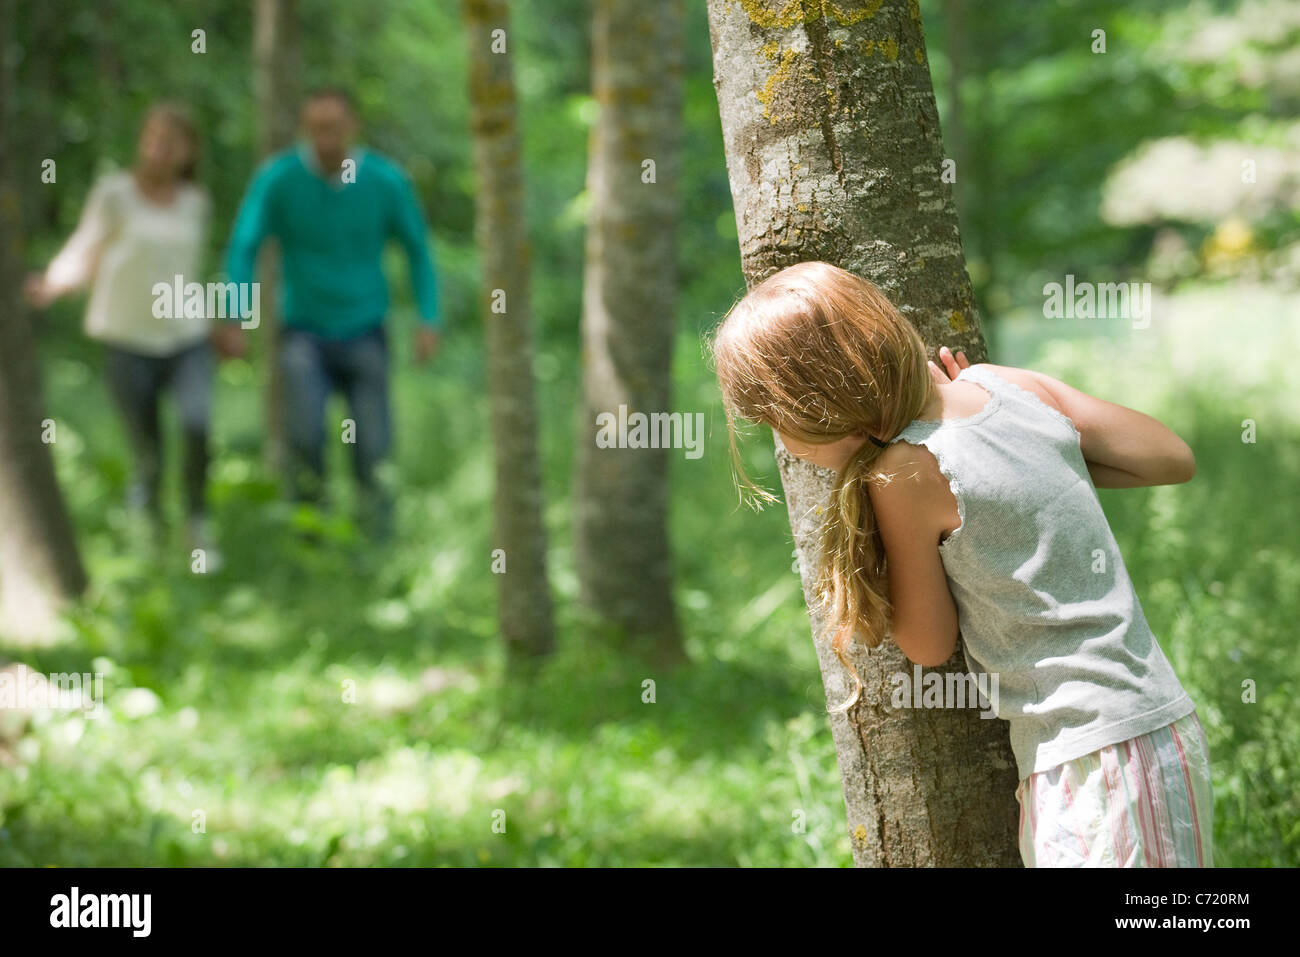 Girl hiding behind tree Stock Photo